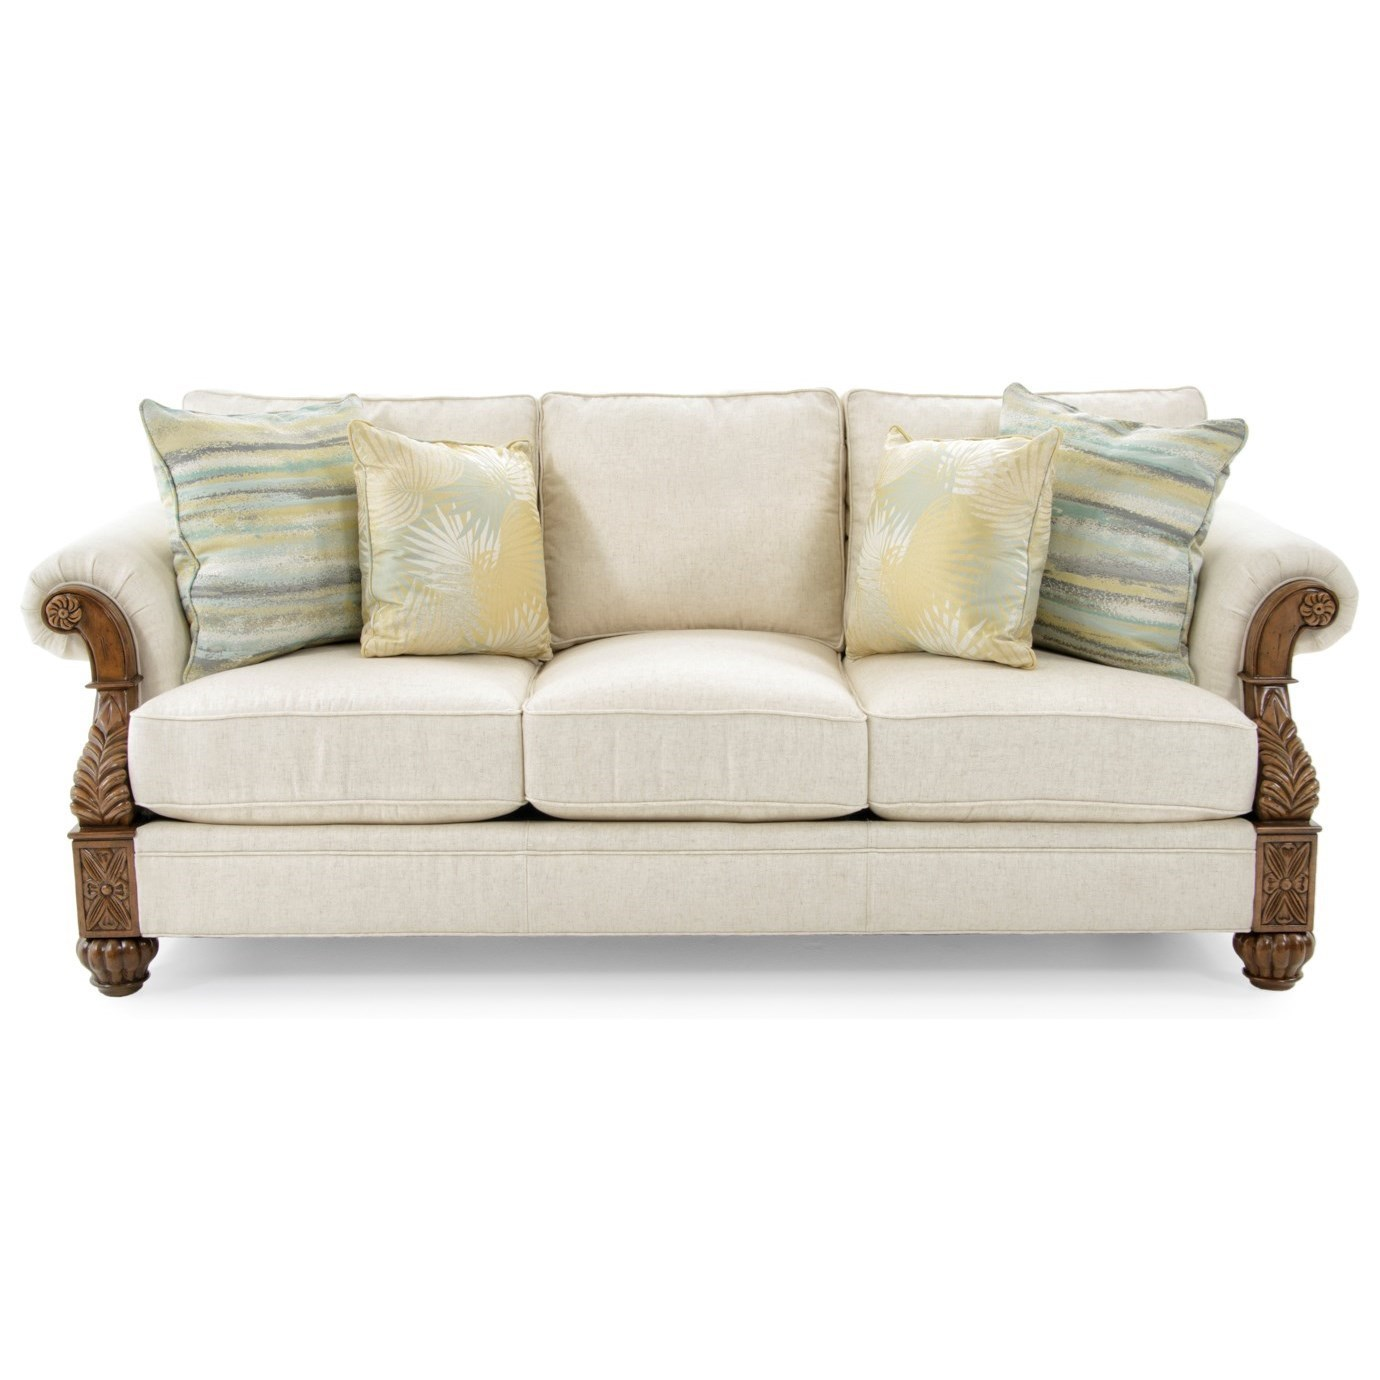 Home Sofa In A Box Tommy Bahama Home Tommy Bahama Upholstery 7530 33 02 Benoa Harbour